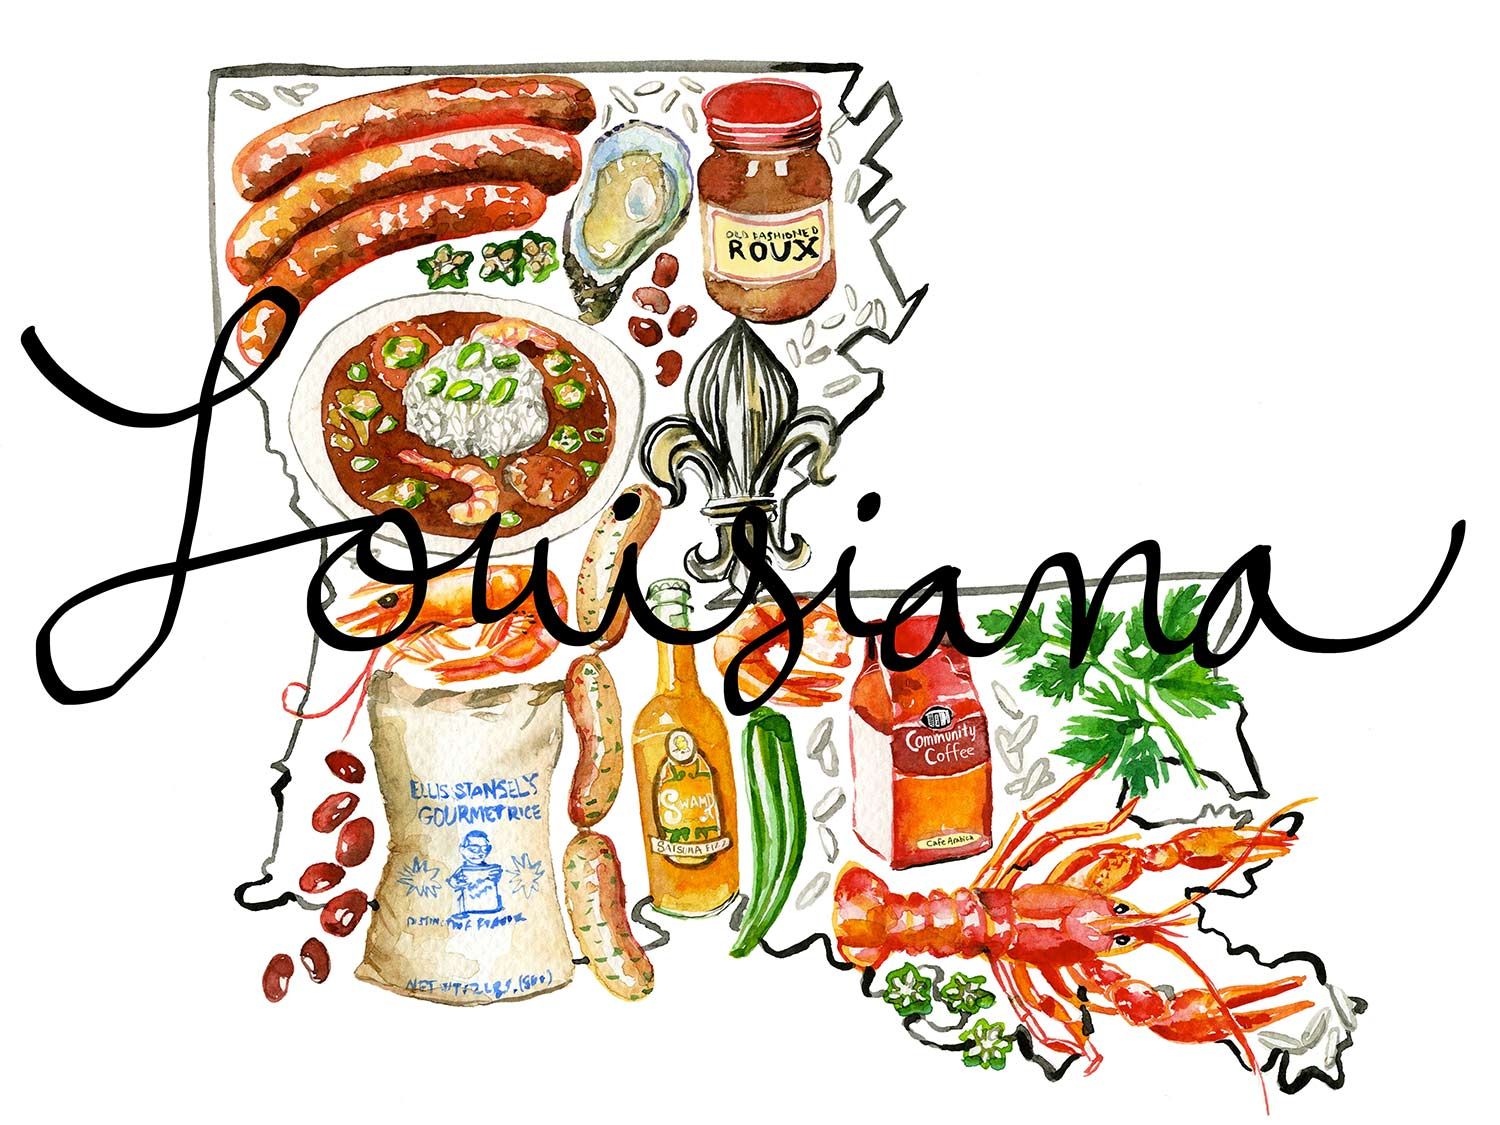 Serious-Eats-Louisiana-Jessie-Kanelos-Weiner-text-web